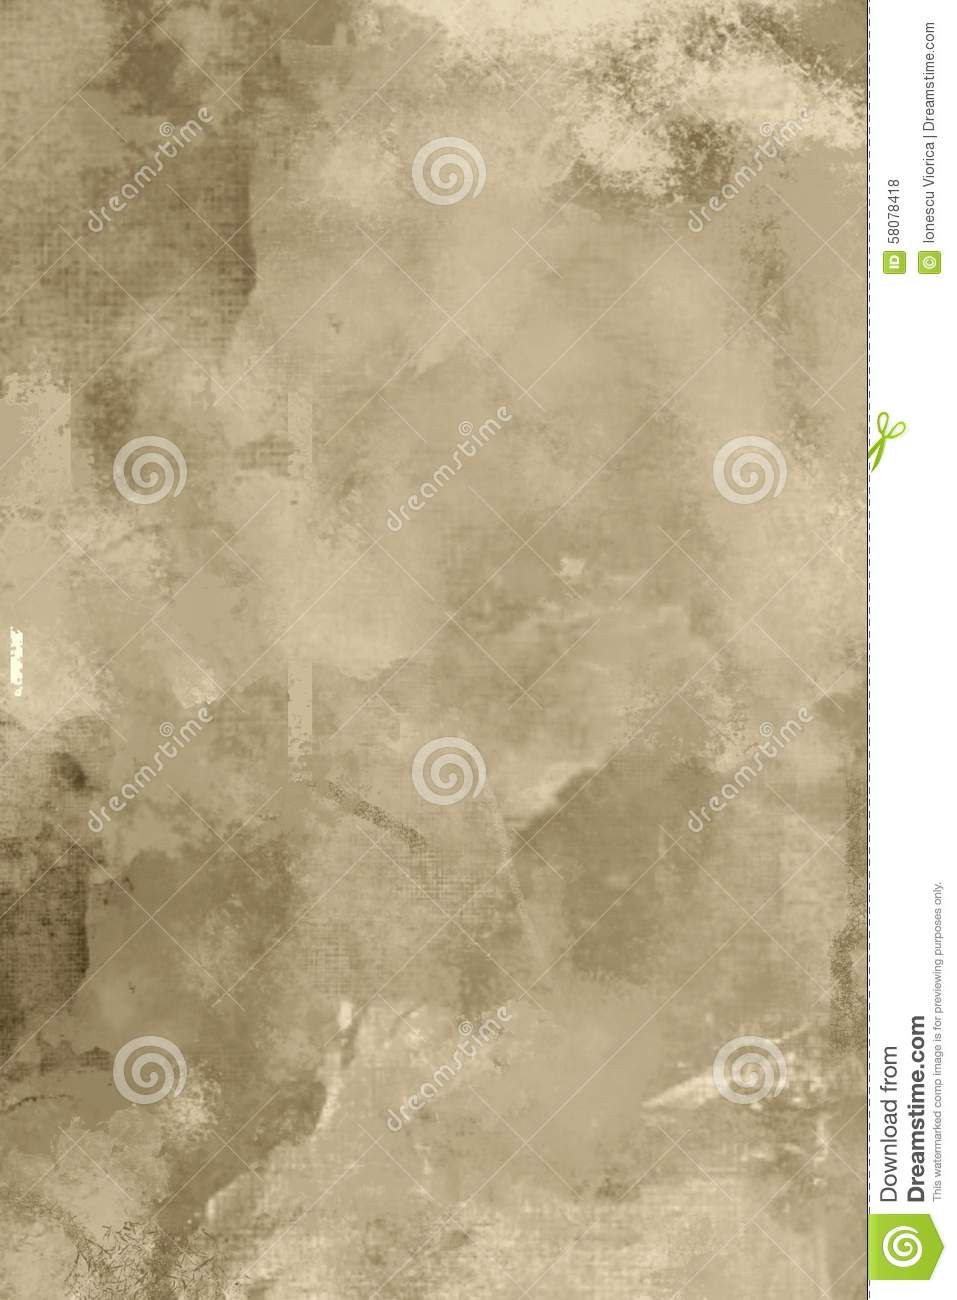 Abstract Grey Background Old Sepia Texture Stock